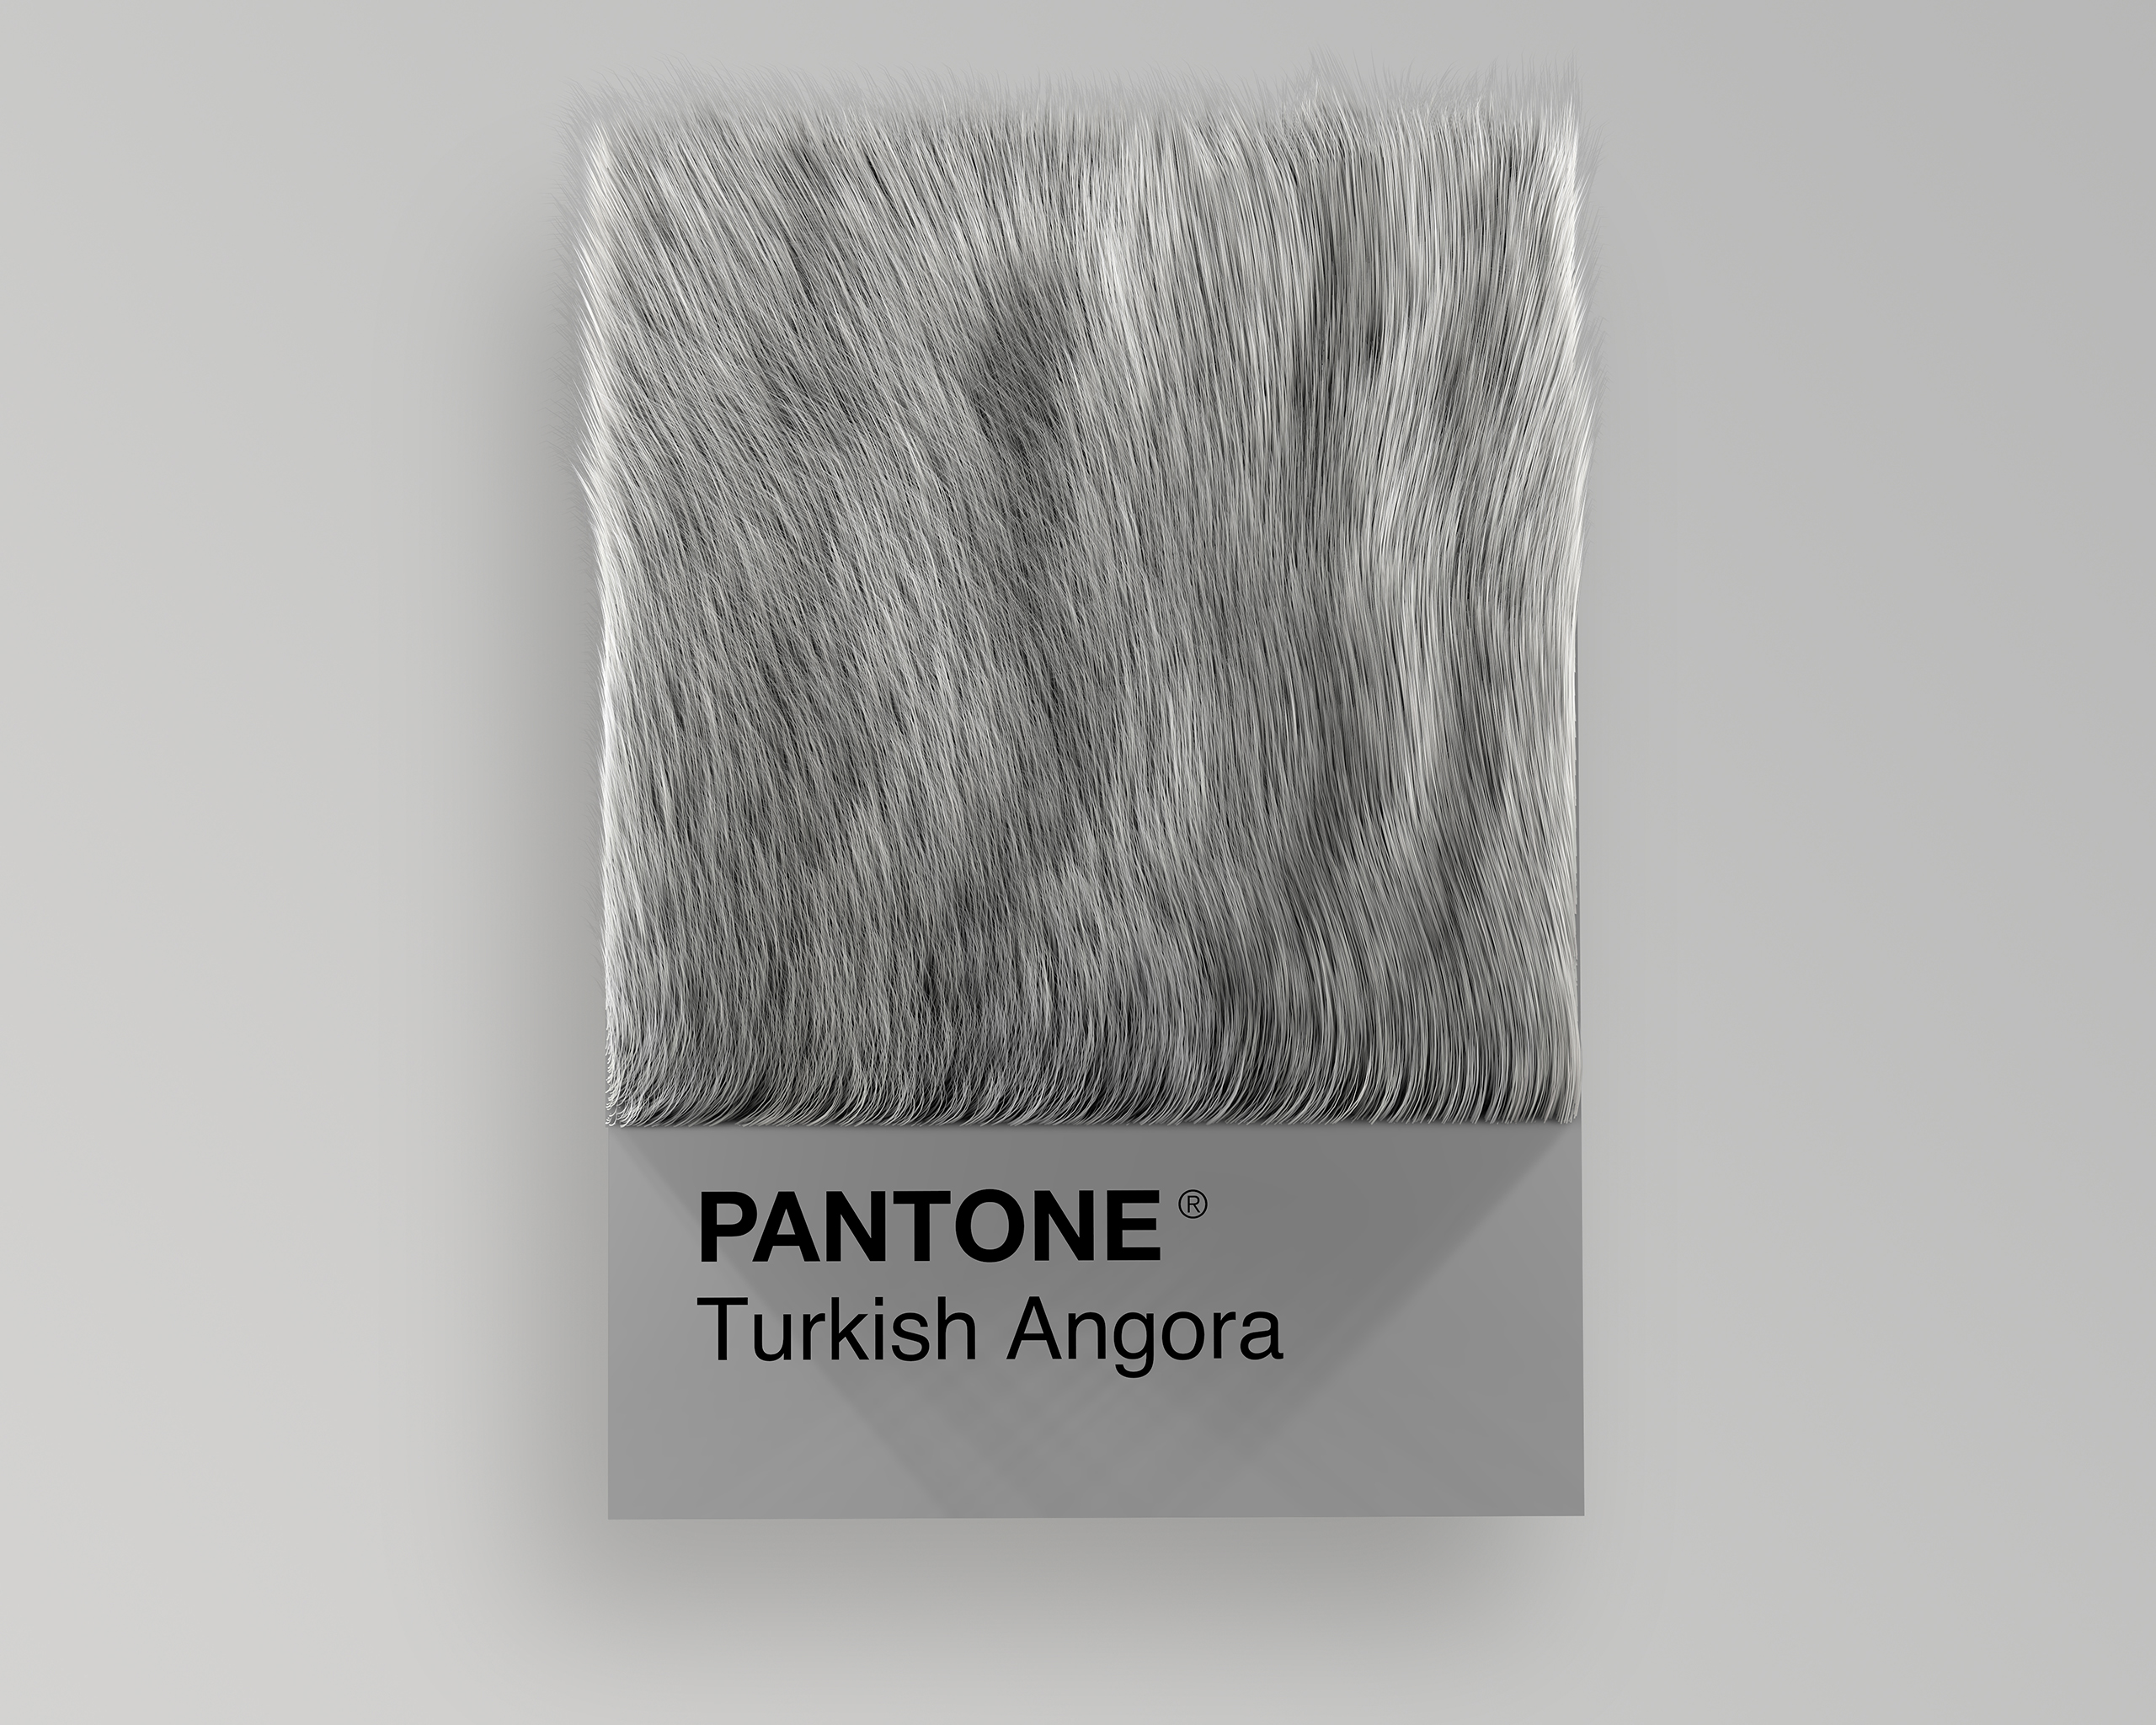 Turkish Angora as Pantone